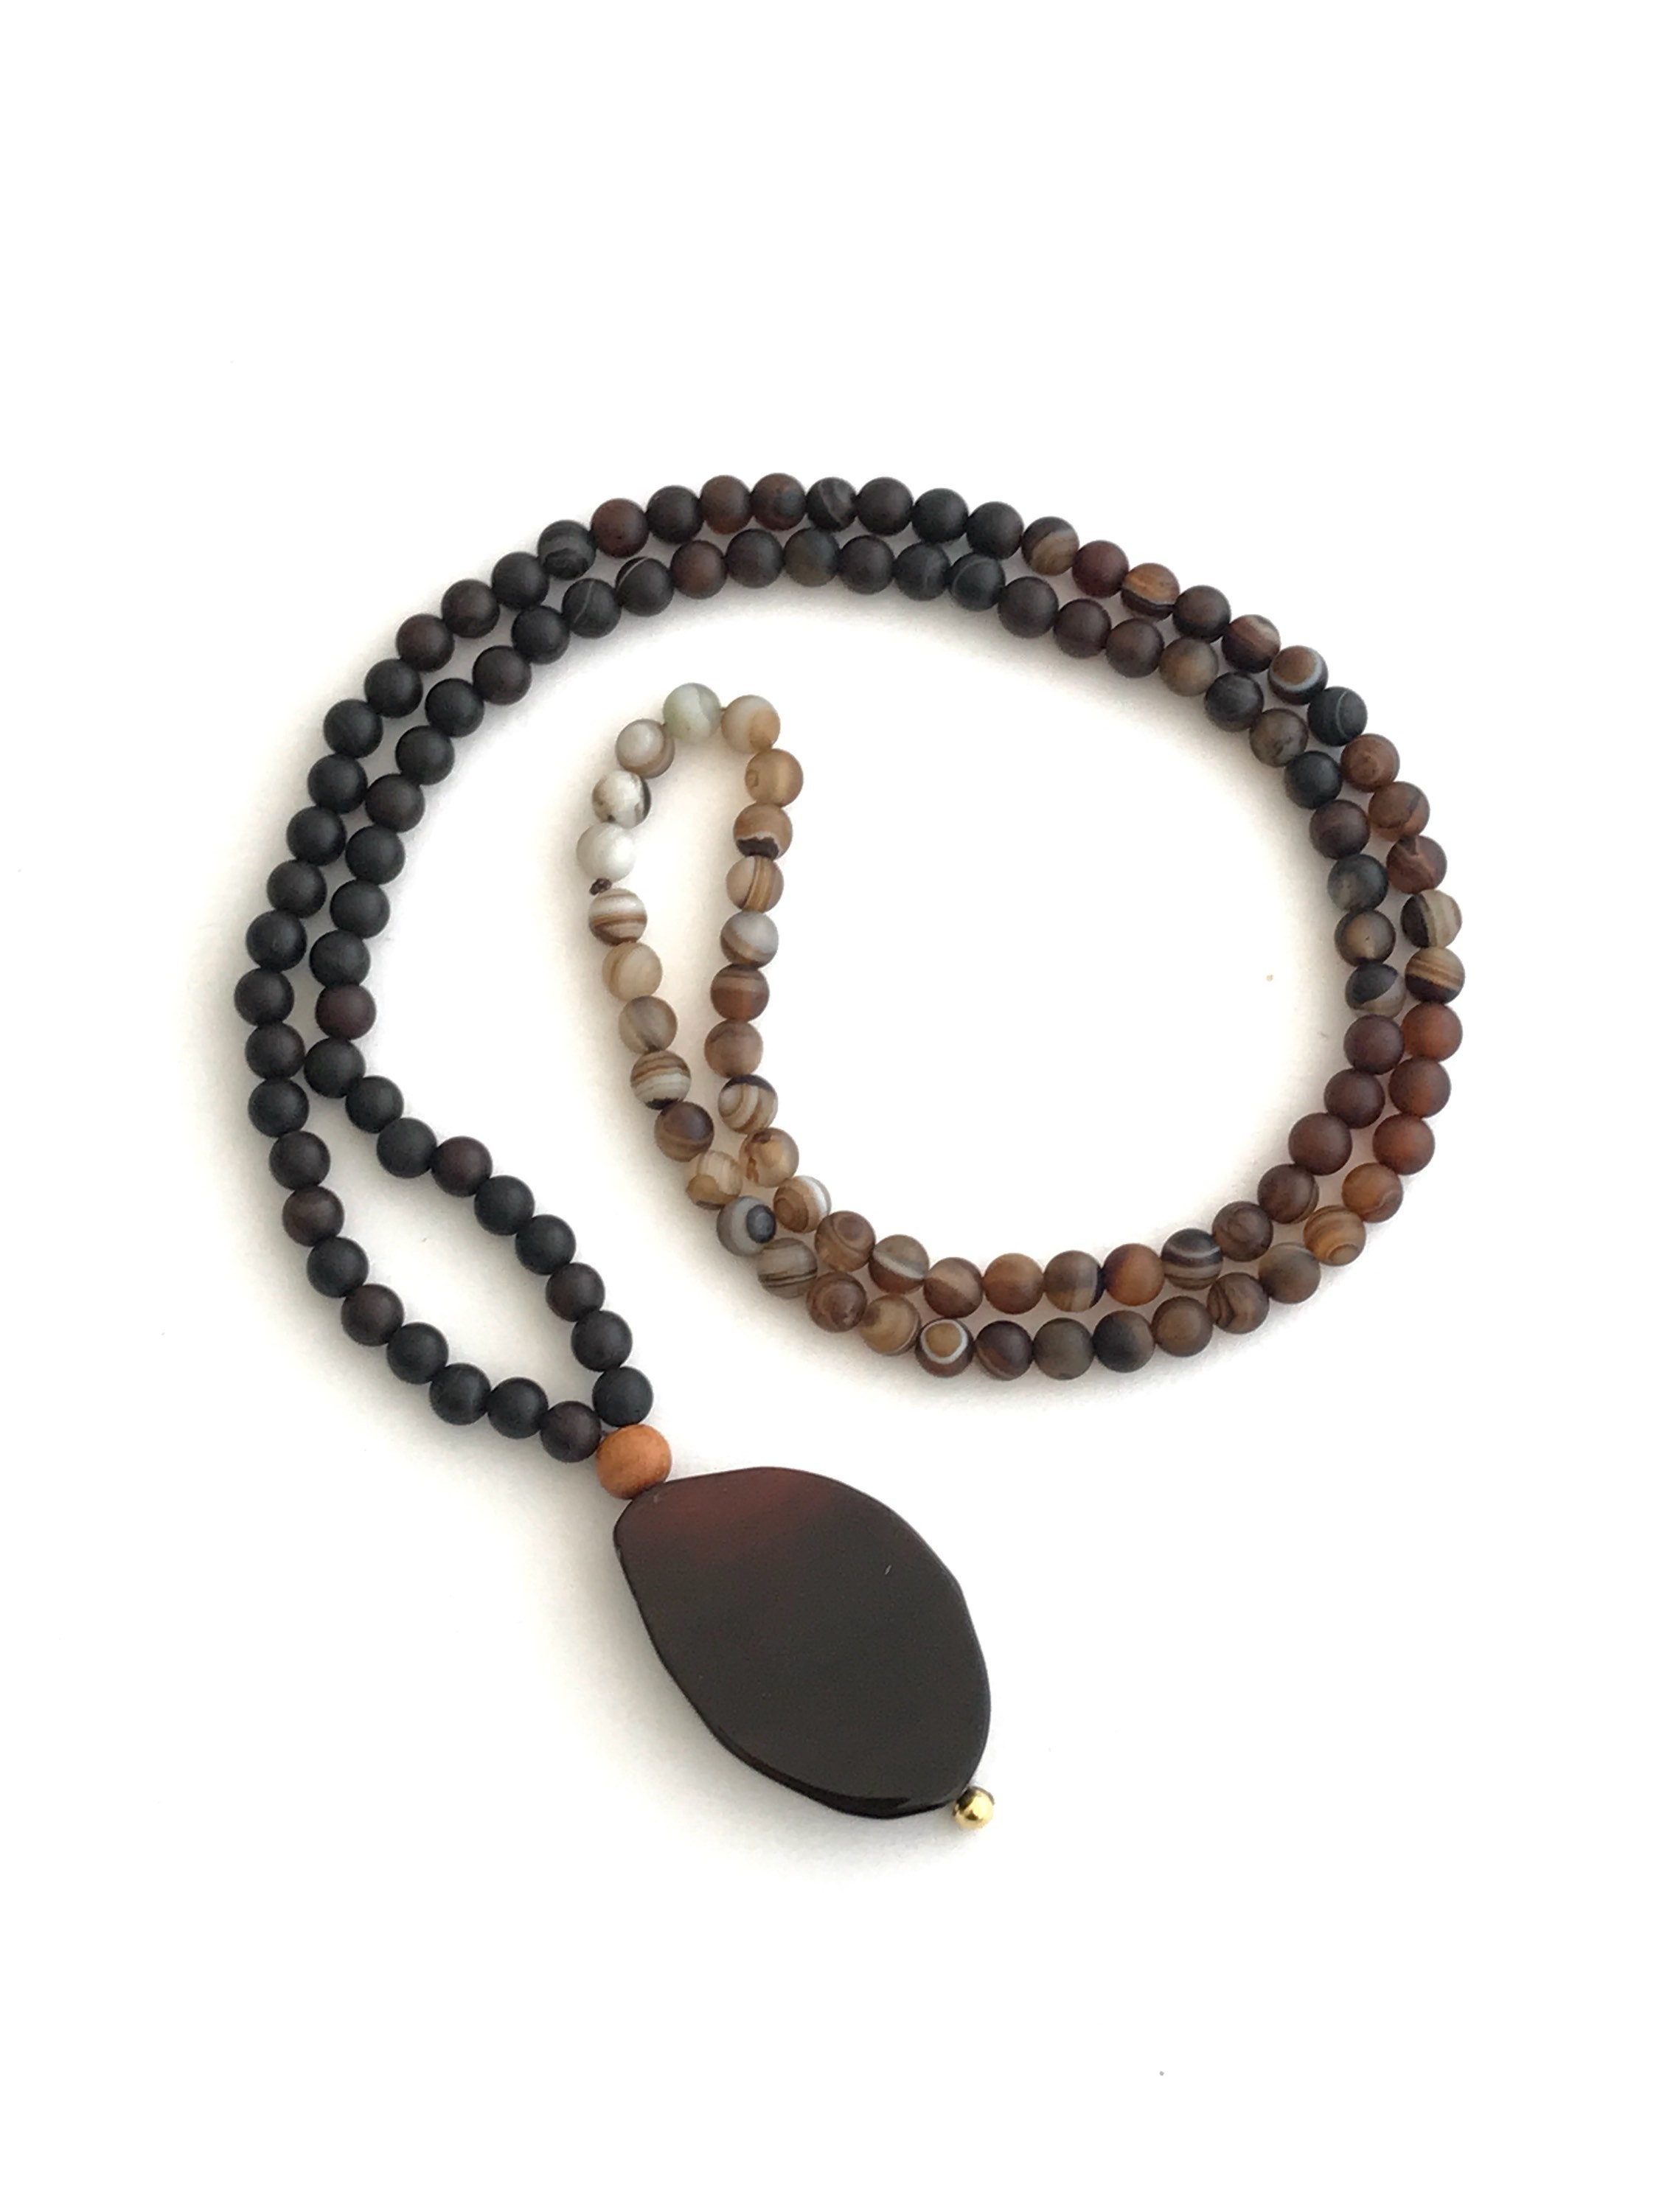 x design minimalist lava stone untitled oil essential of products diffuser copy necklace